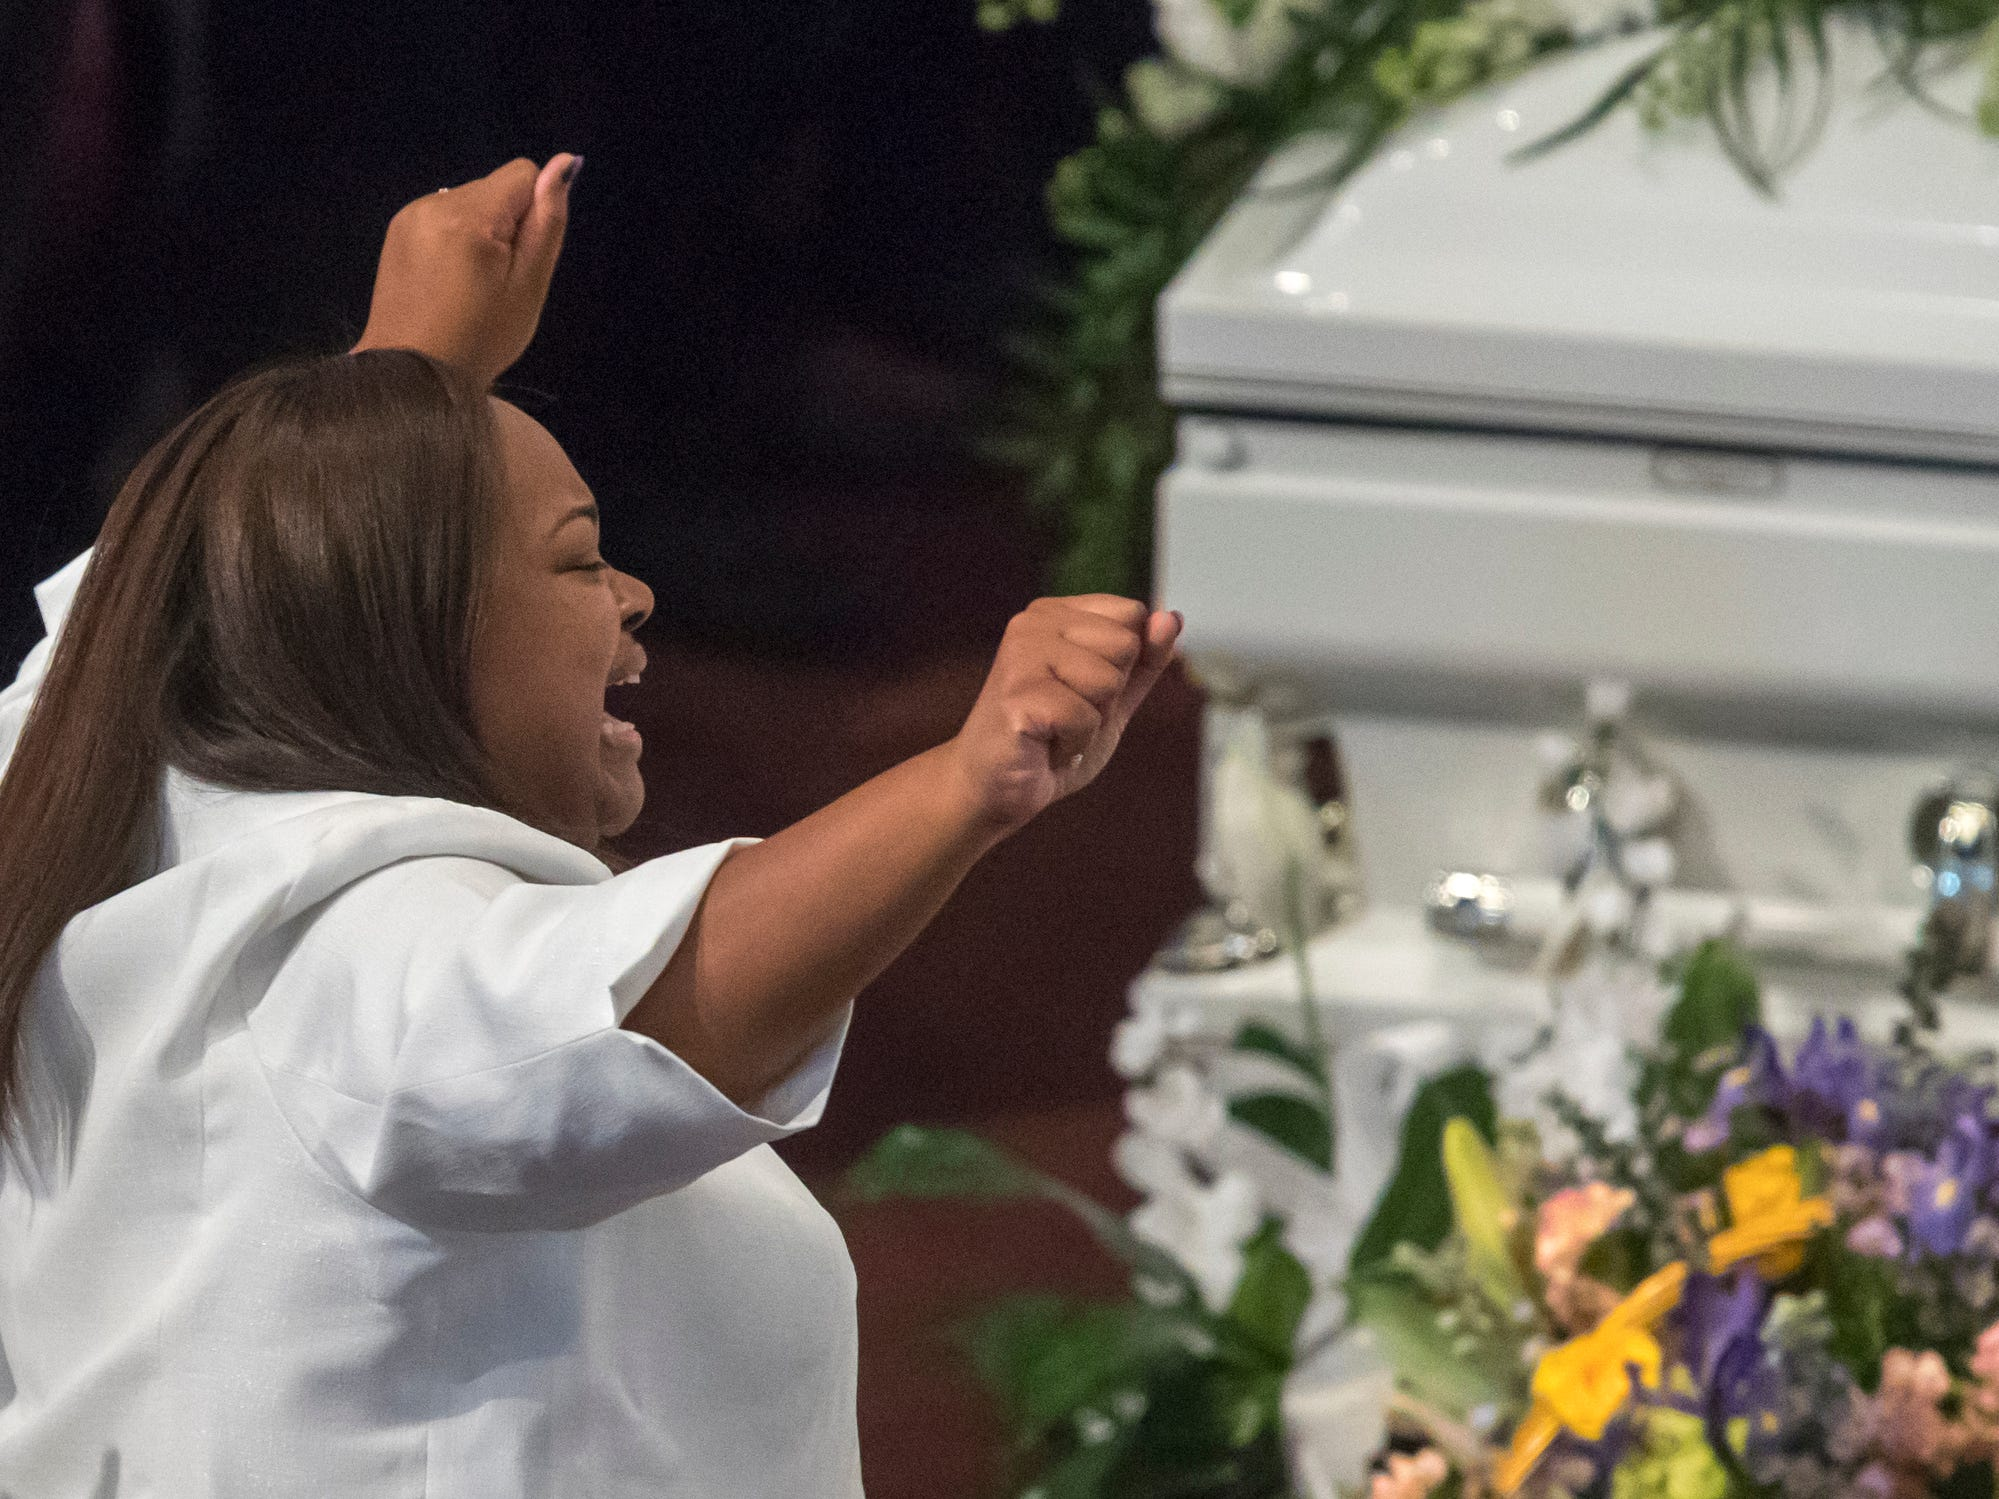 Tia Coleman is moved by a praise dance the dance team performed during the homegoing service of Glenn Coleman, 40, Reece, 9, Evan, 7, and Arya, 1, at Grace Apostolic Church on Friday, July 27, 2018. Seventeen people were killed in the duck boat accident in Branson, Missouri, nine of them were members of the Coleman family.